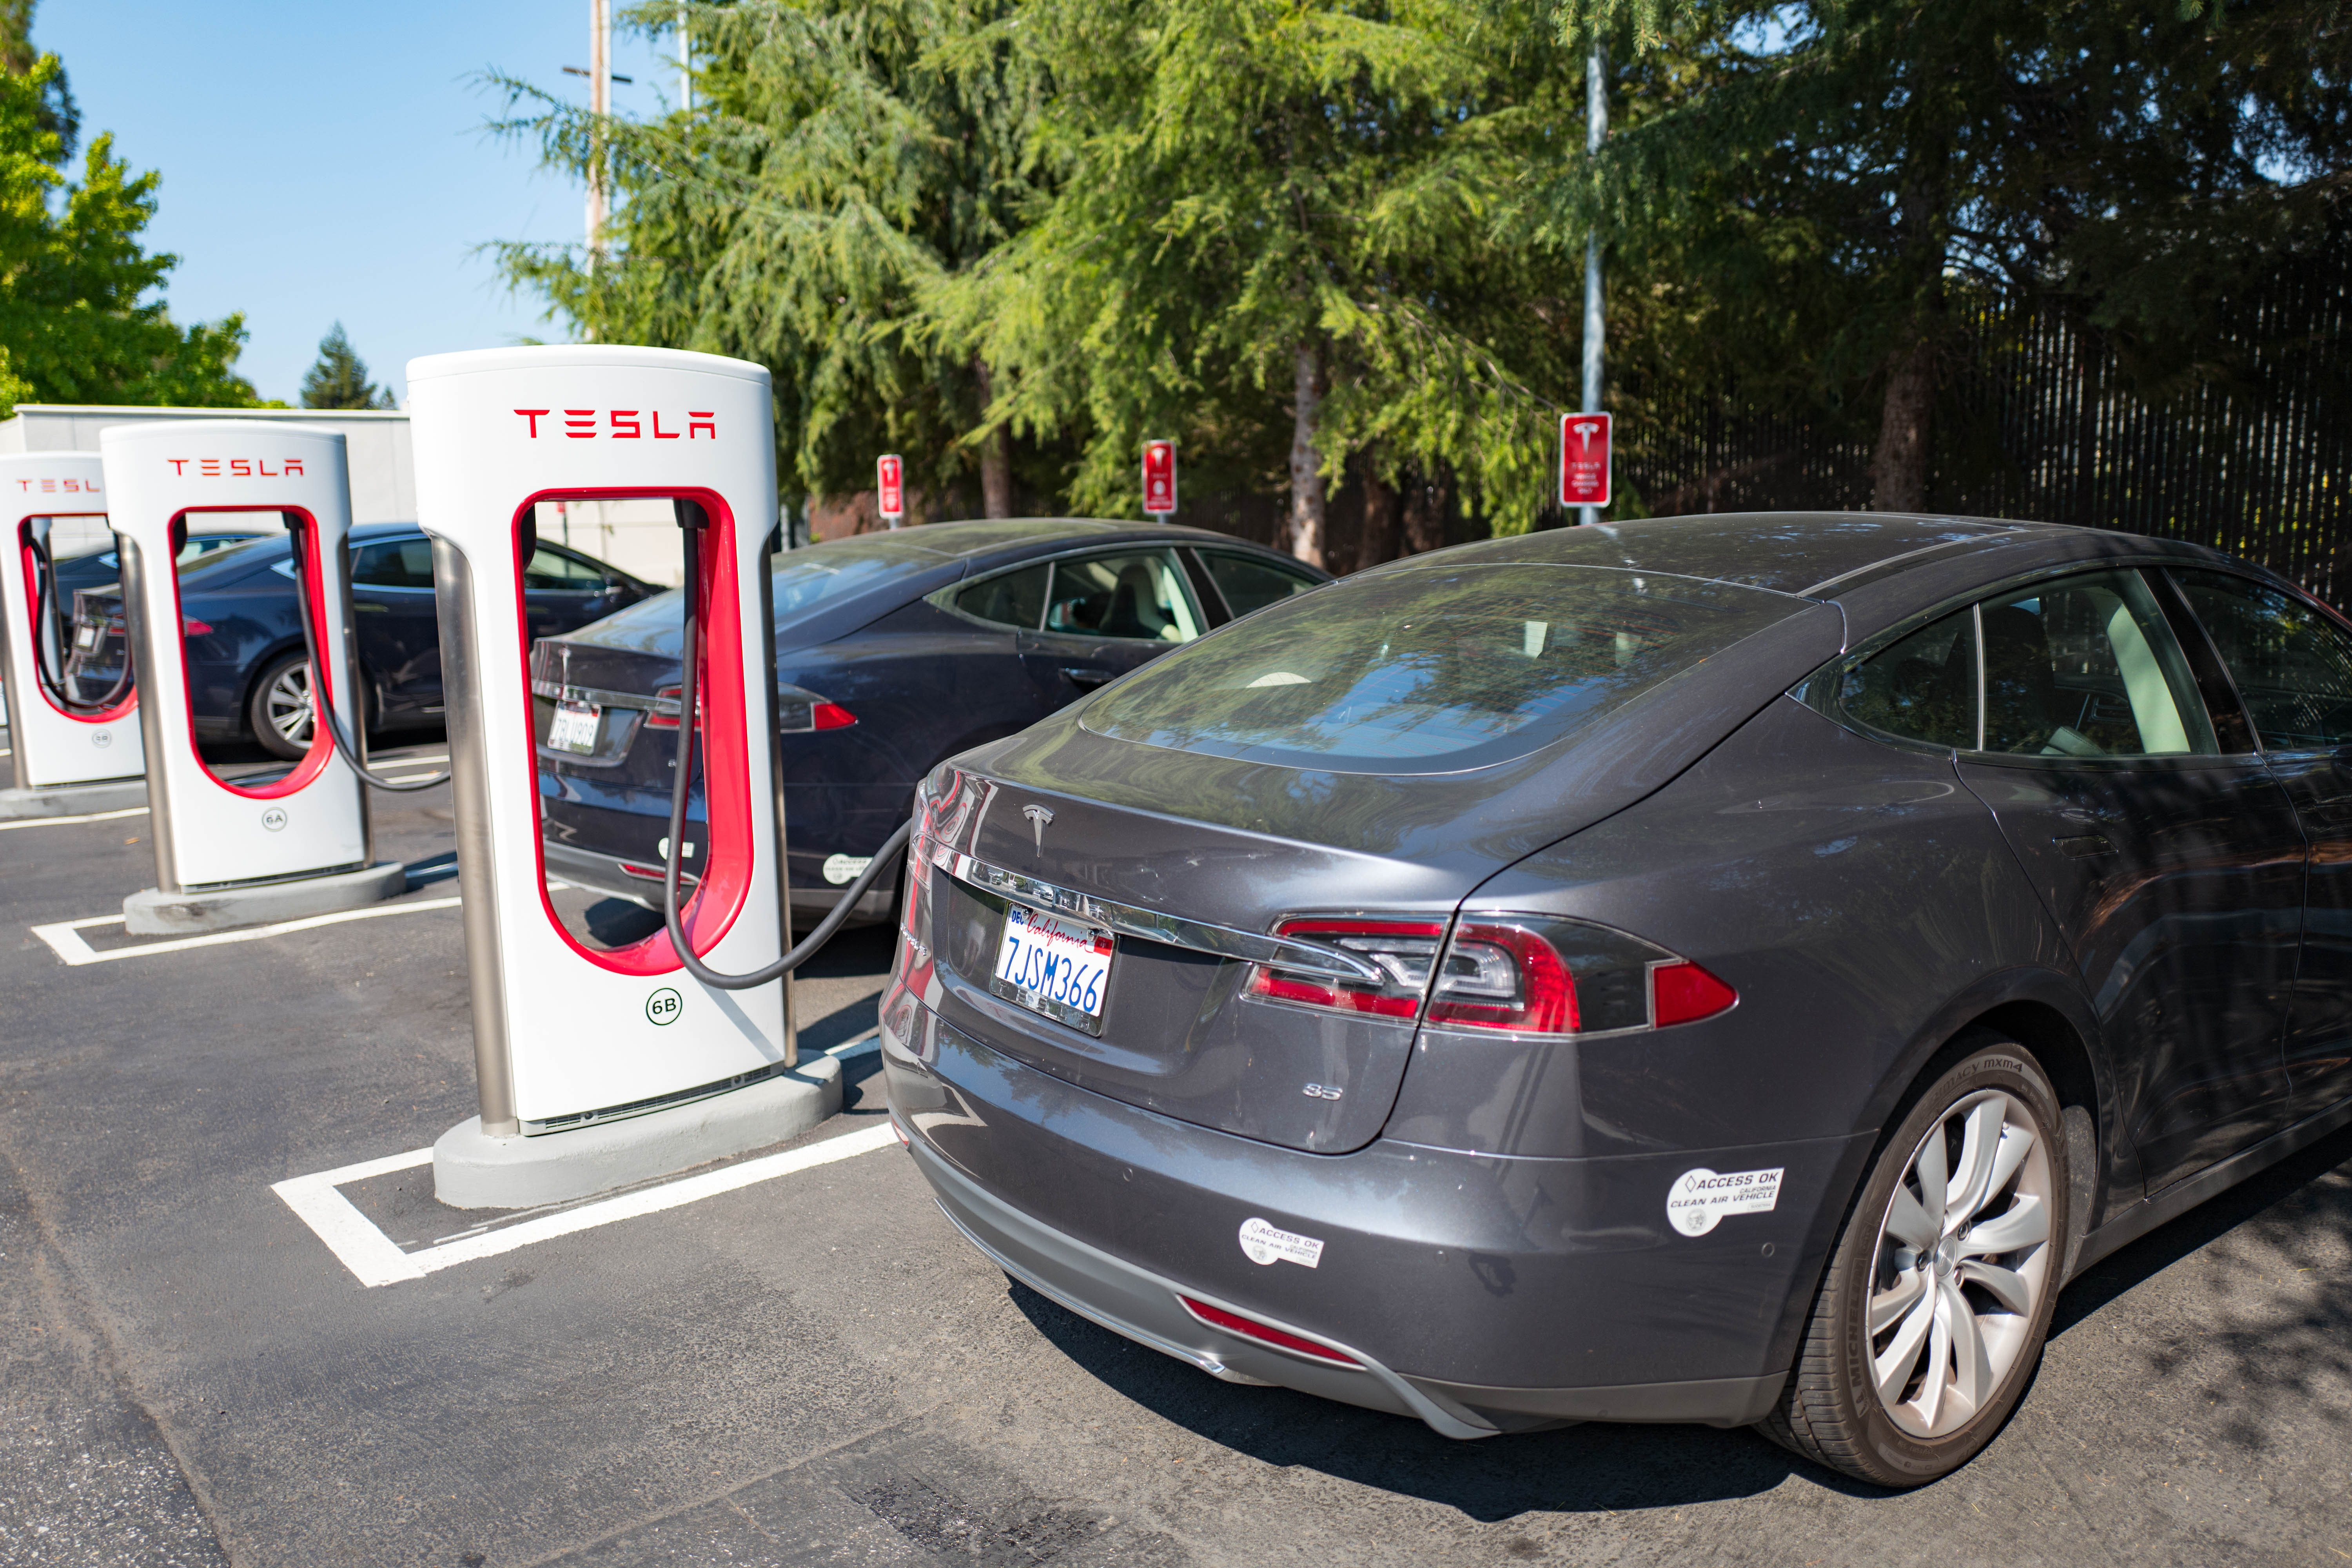 Tesla vehicles plugged in and charging | Photo: Getty Images